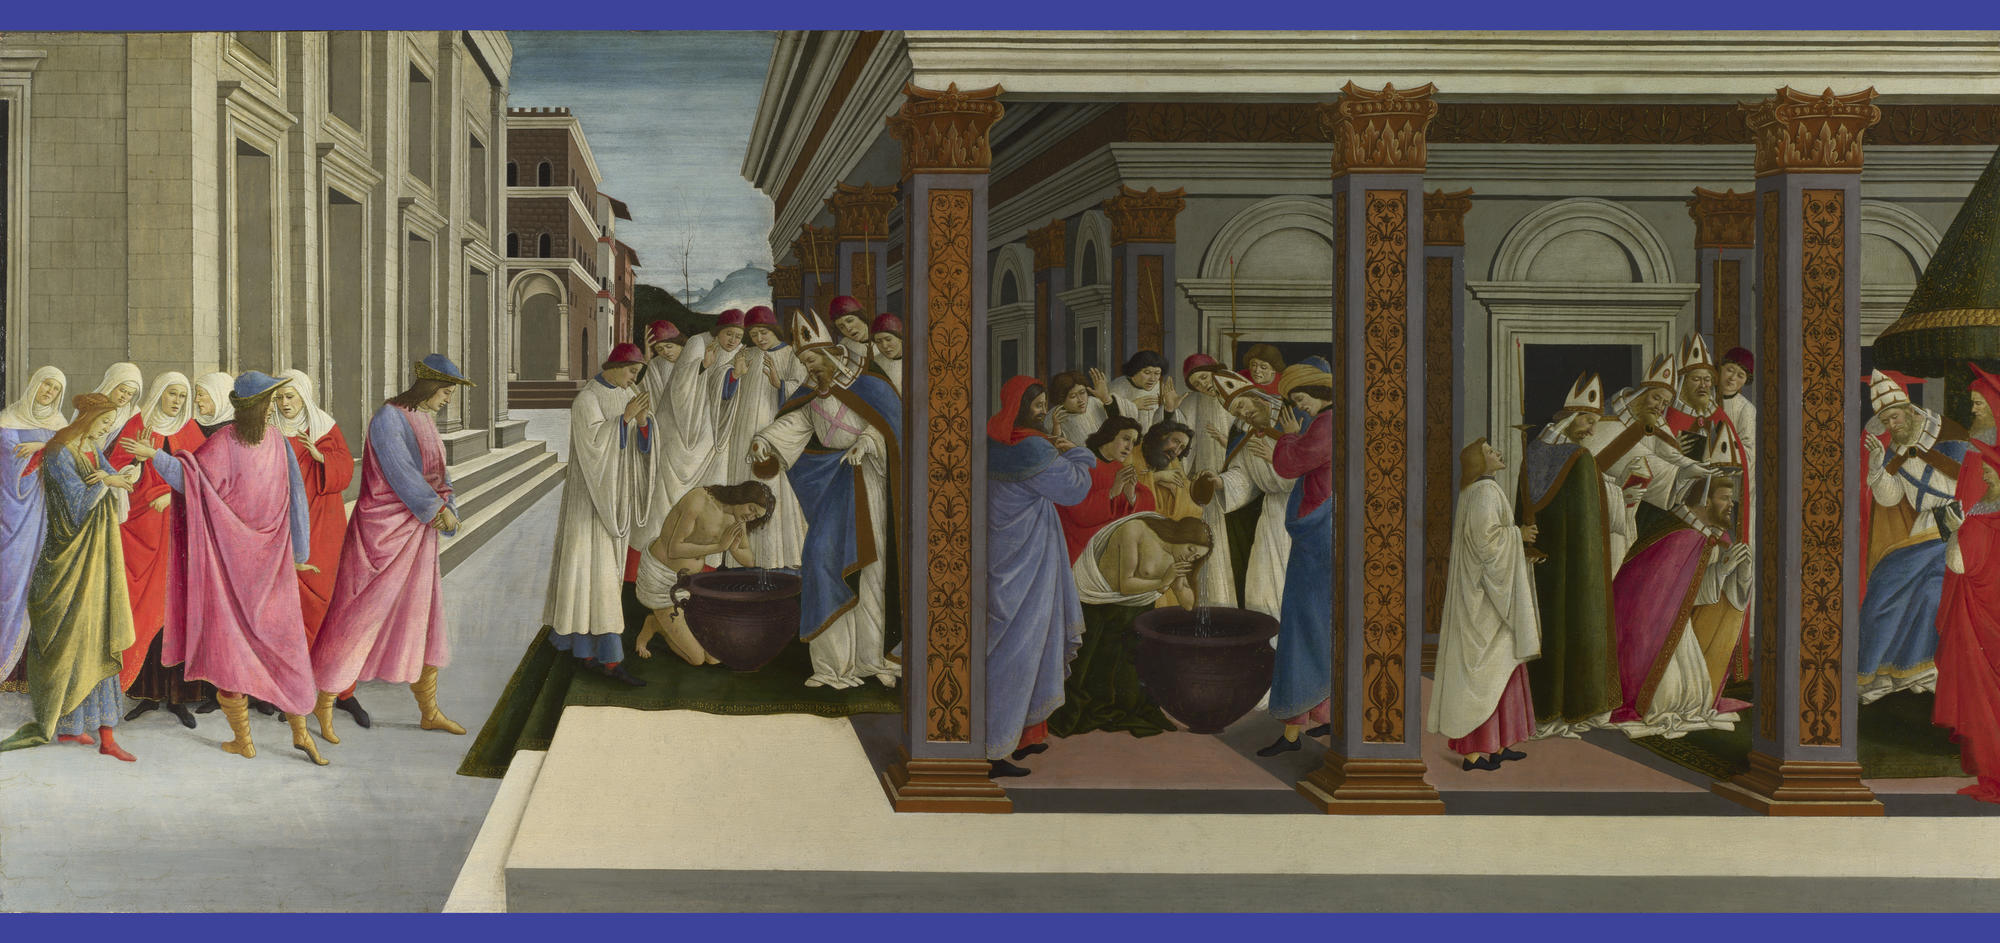 Sandro Botticelli (Italian, 1444 or 1445-1510), Four Scenes from the Early Life of Zenobius, about 1500. Tempera on panel, 66.7 x 149.2 cm (26 1/4 x 58 3/4 in.) National Gallery, London. © National Gallery, London / Art Resource, NY